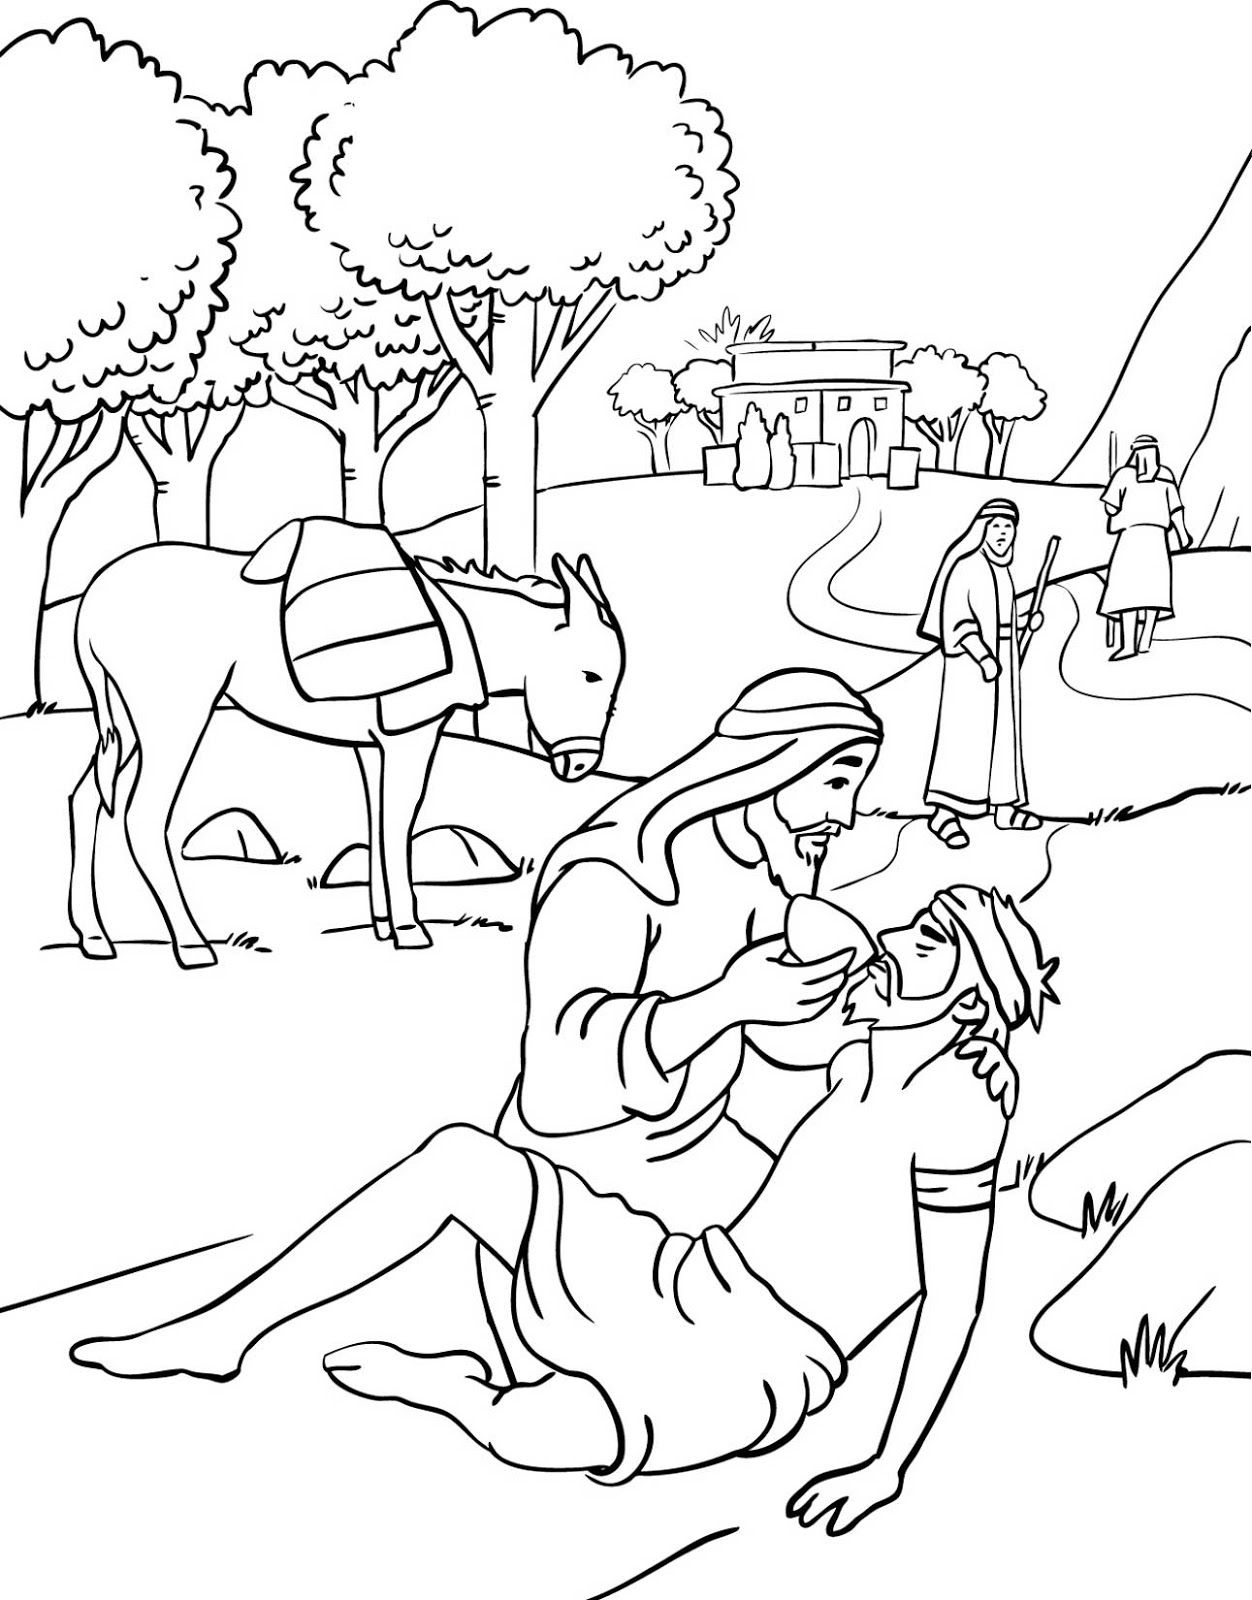 - Good Samaritan Coloring Pages - Best Coloring Pages For Kids